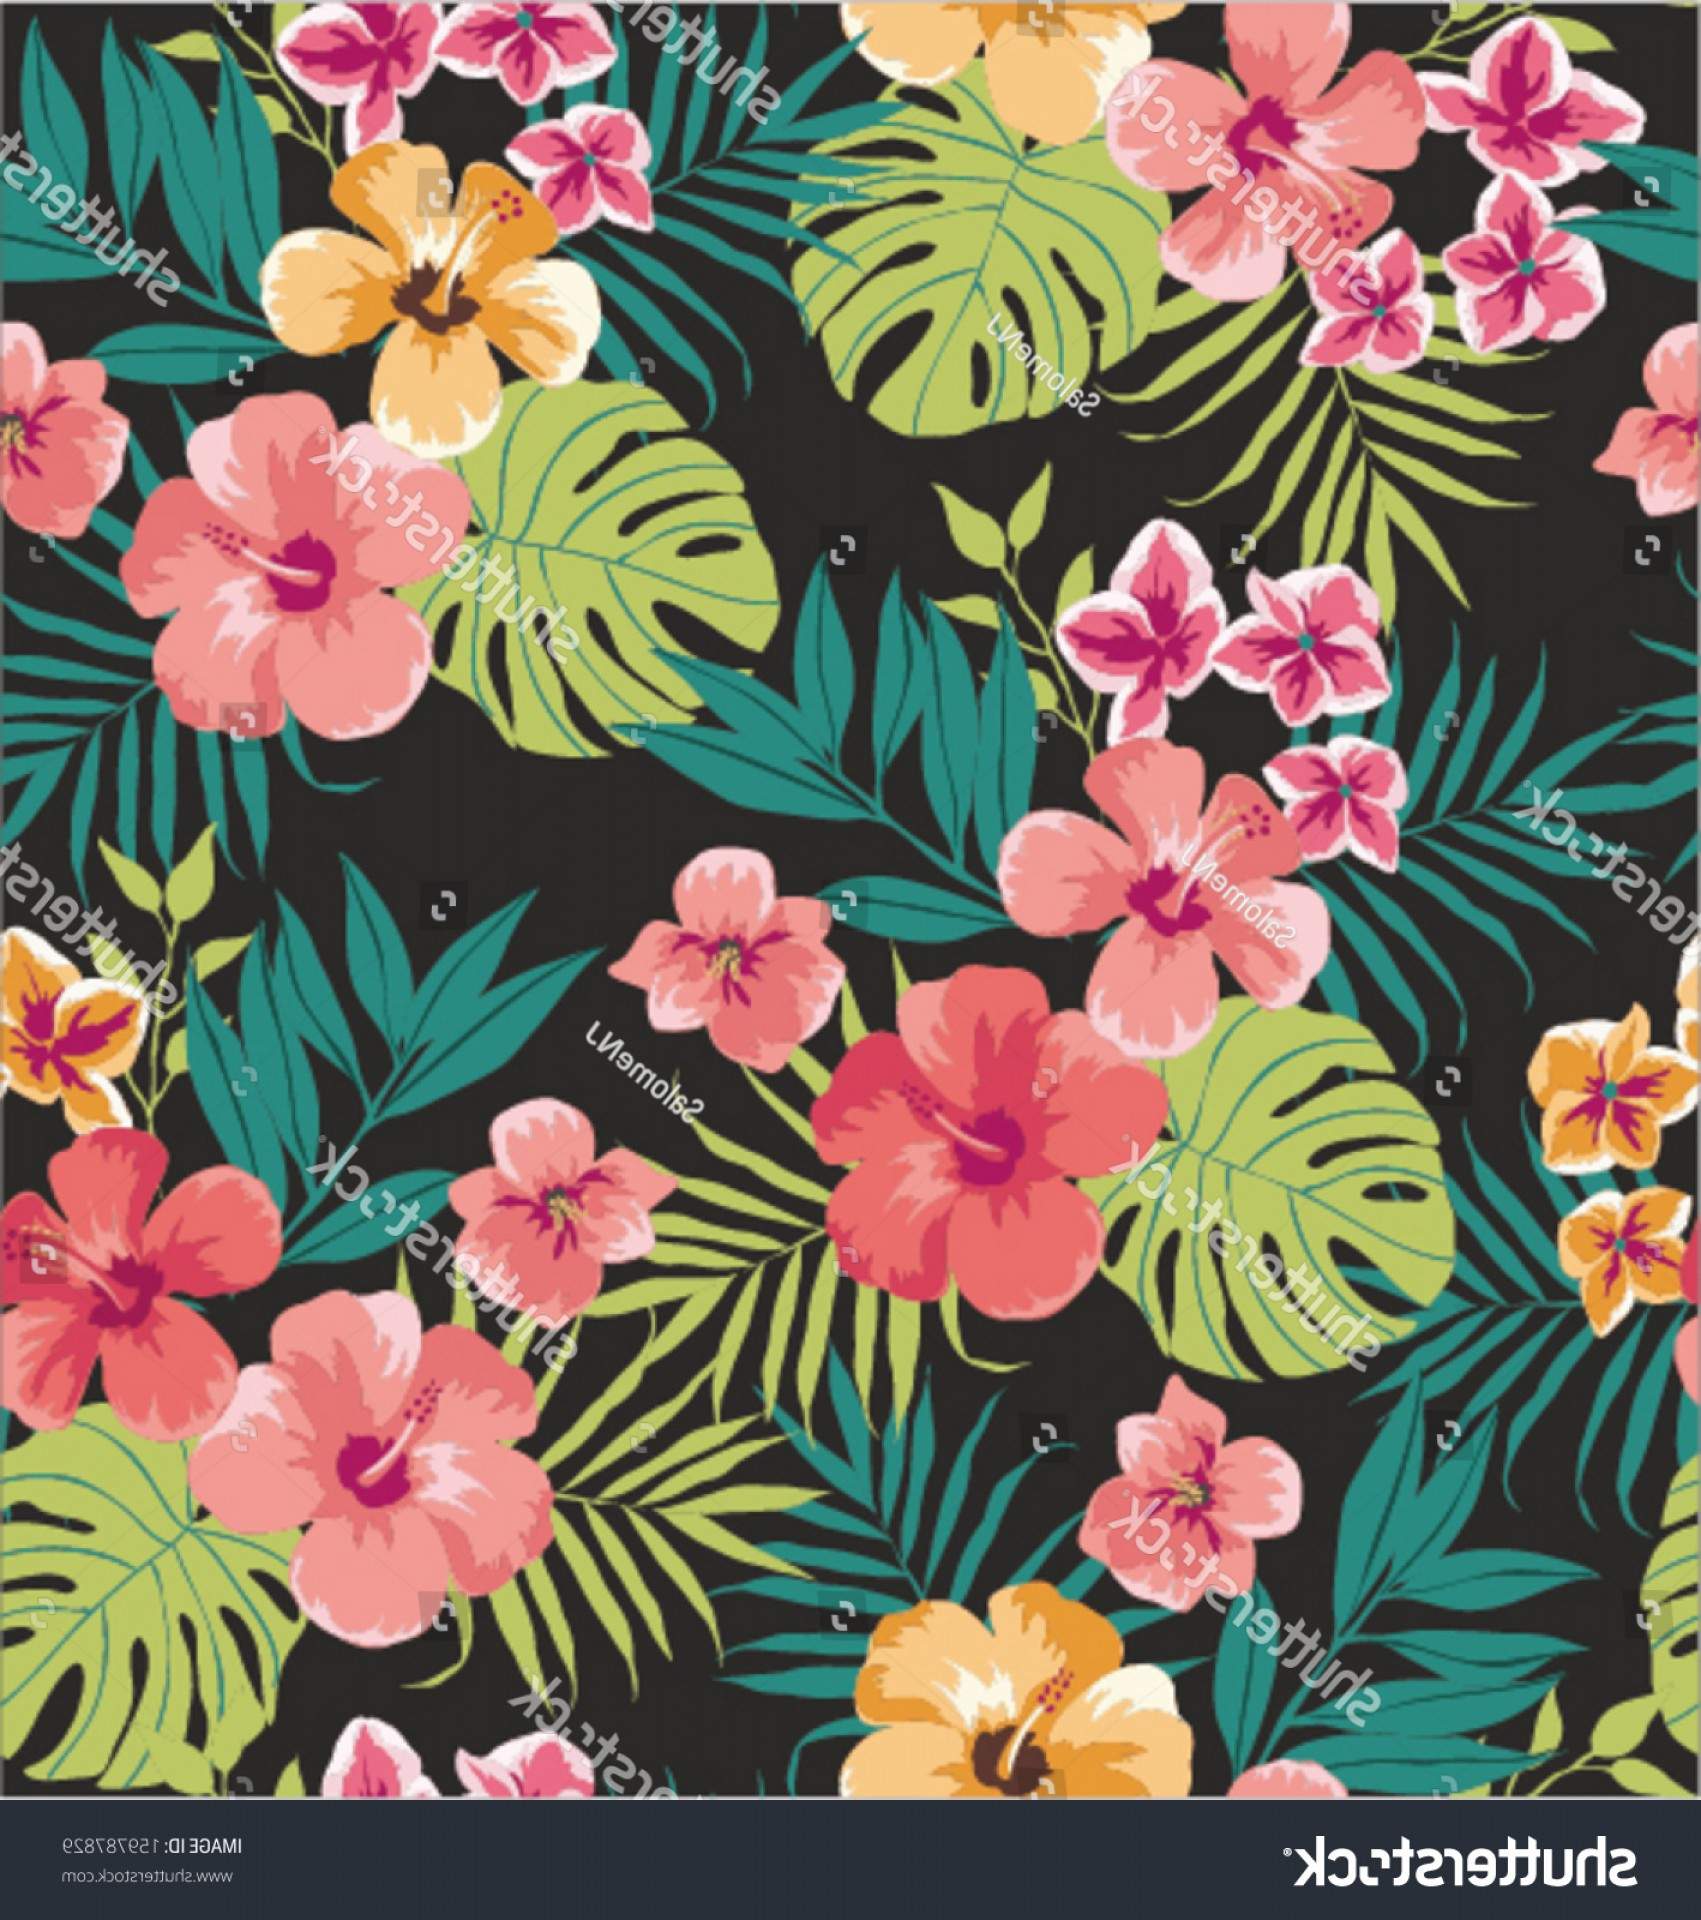 Hawaiian Flower Seamless Vector Pattern: Artistic Seamless Tropical Flower Vector Pattern Background